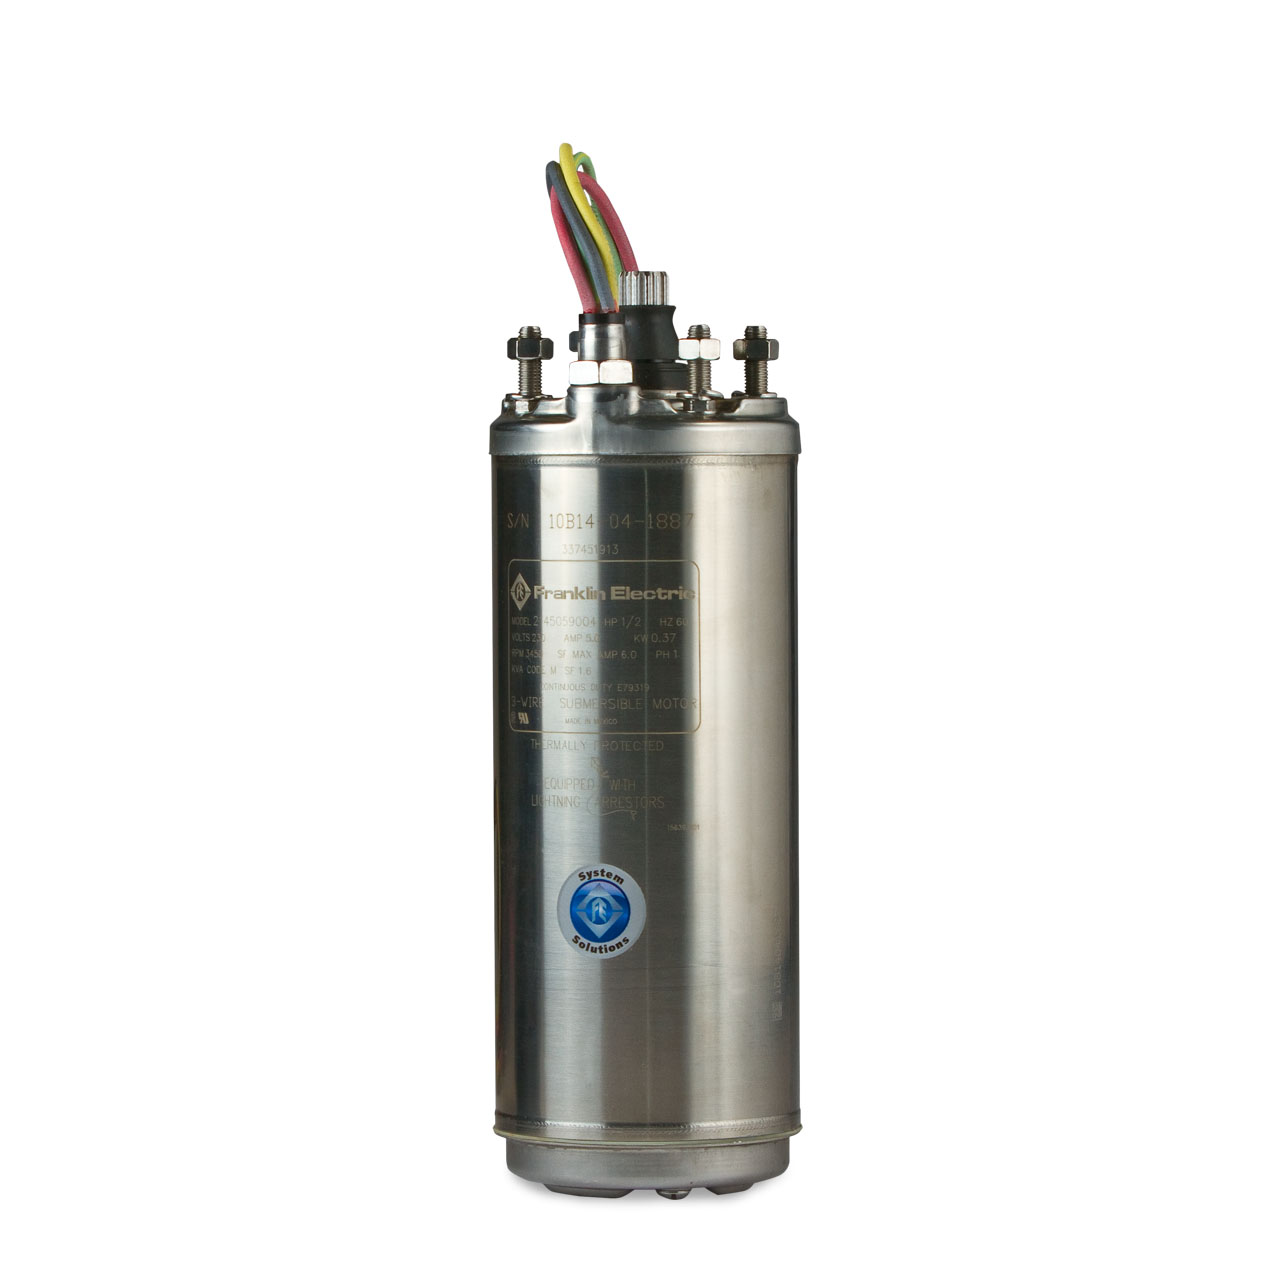 "Franklin Electric - Franklin Electric 2445079004 Super Stainless Water Well  Motor 4"" 0.75 HP 230V 2-Wire Single-Phase #FEC2445079004"